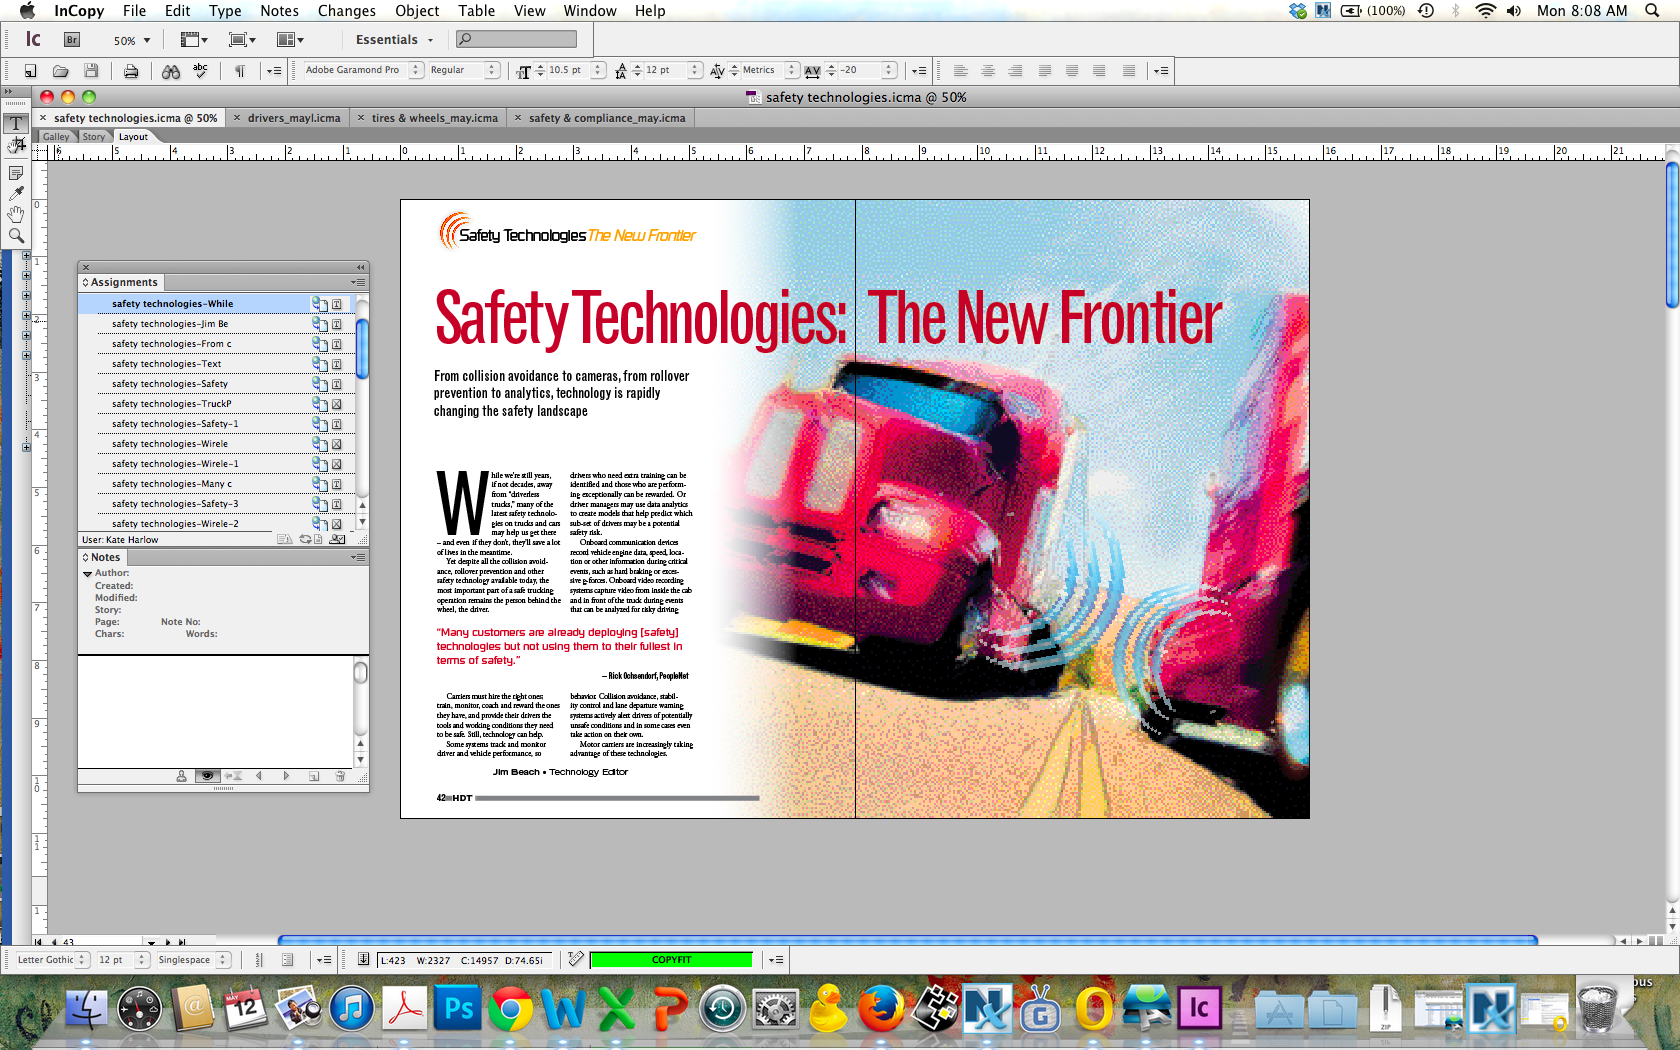 Safety Technologies: The New Frontier